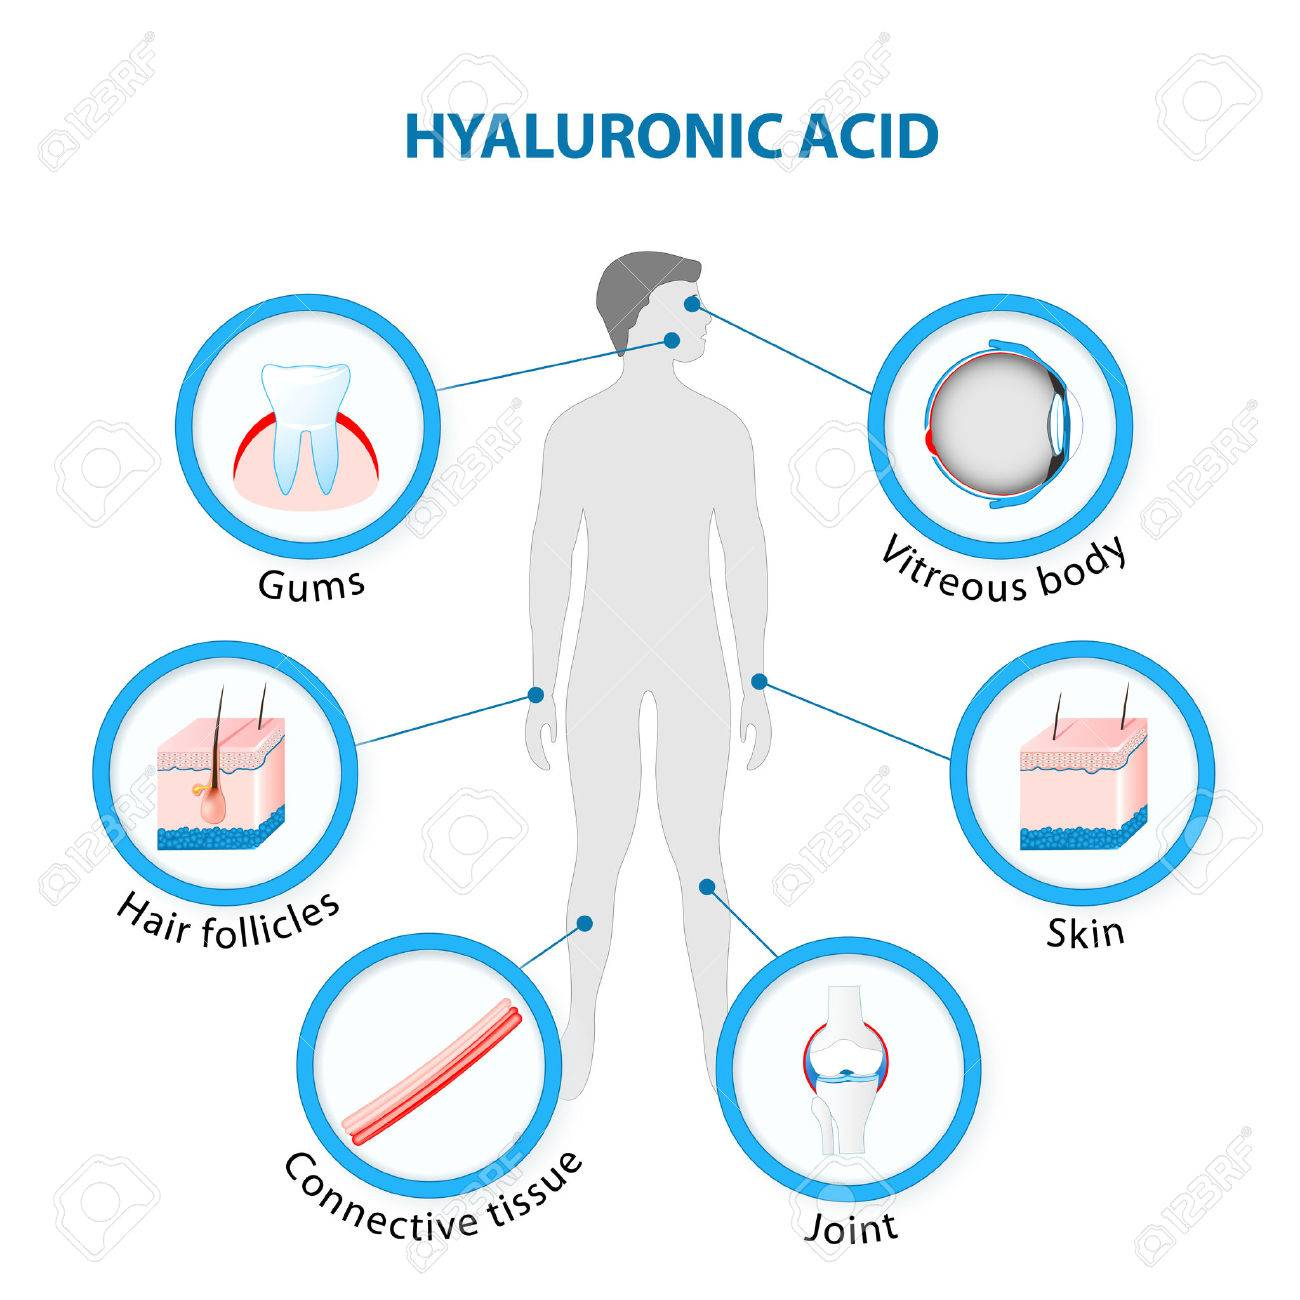 hight resolution of hyaluronic acid in the human body stock vector 69252664